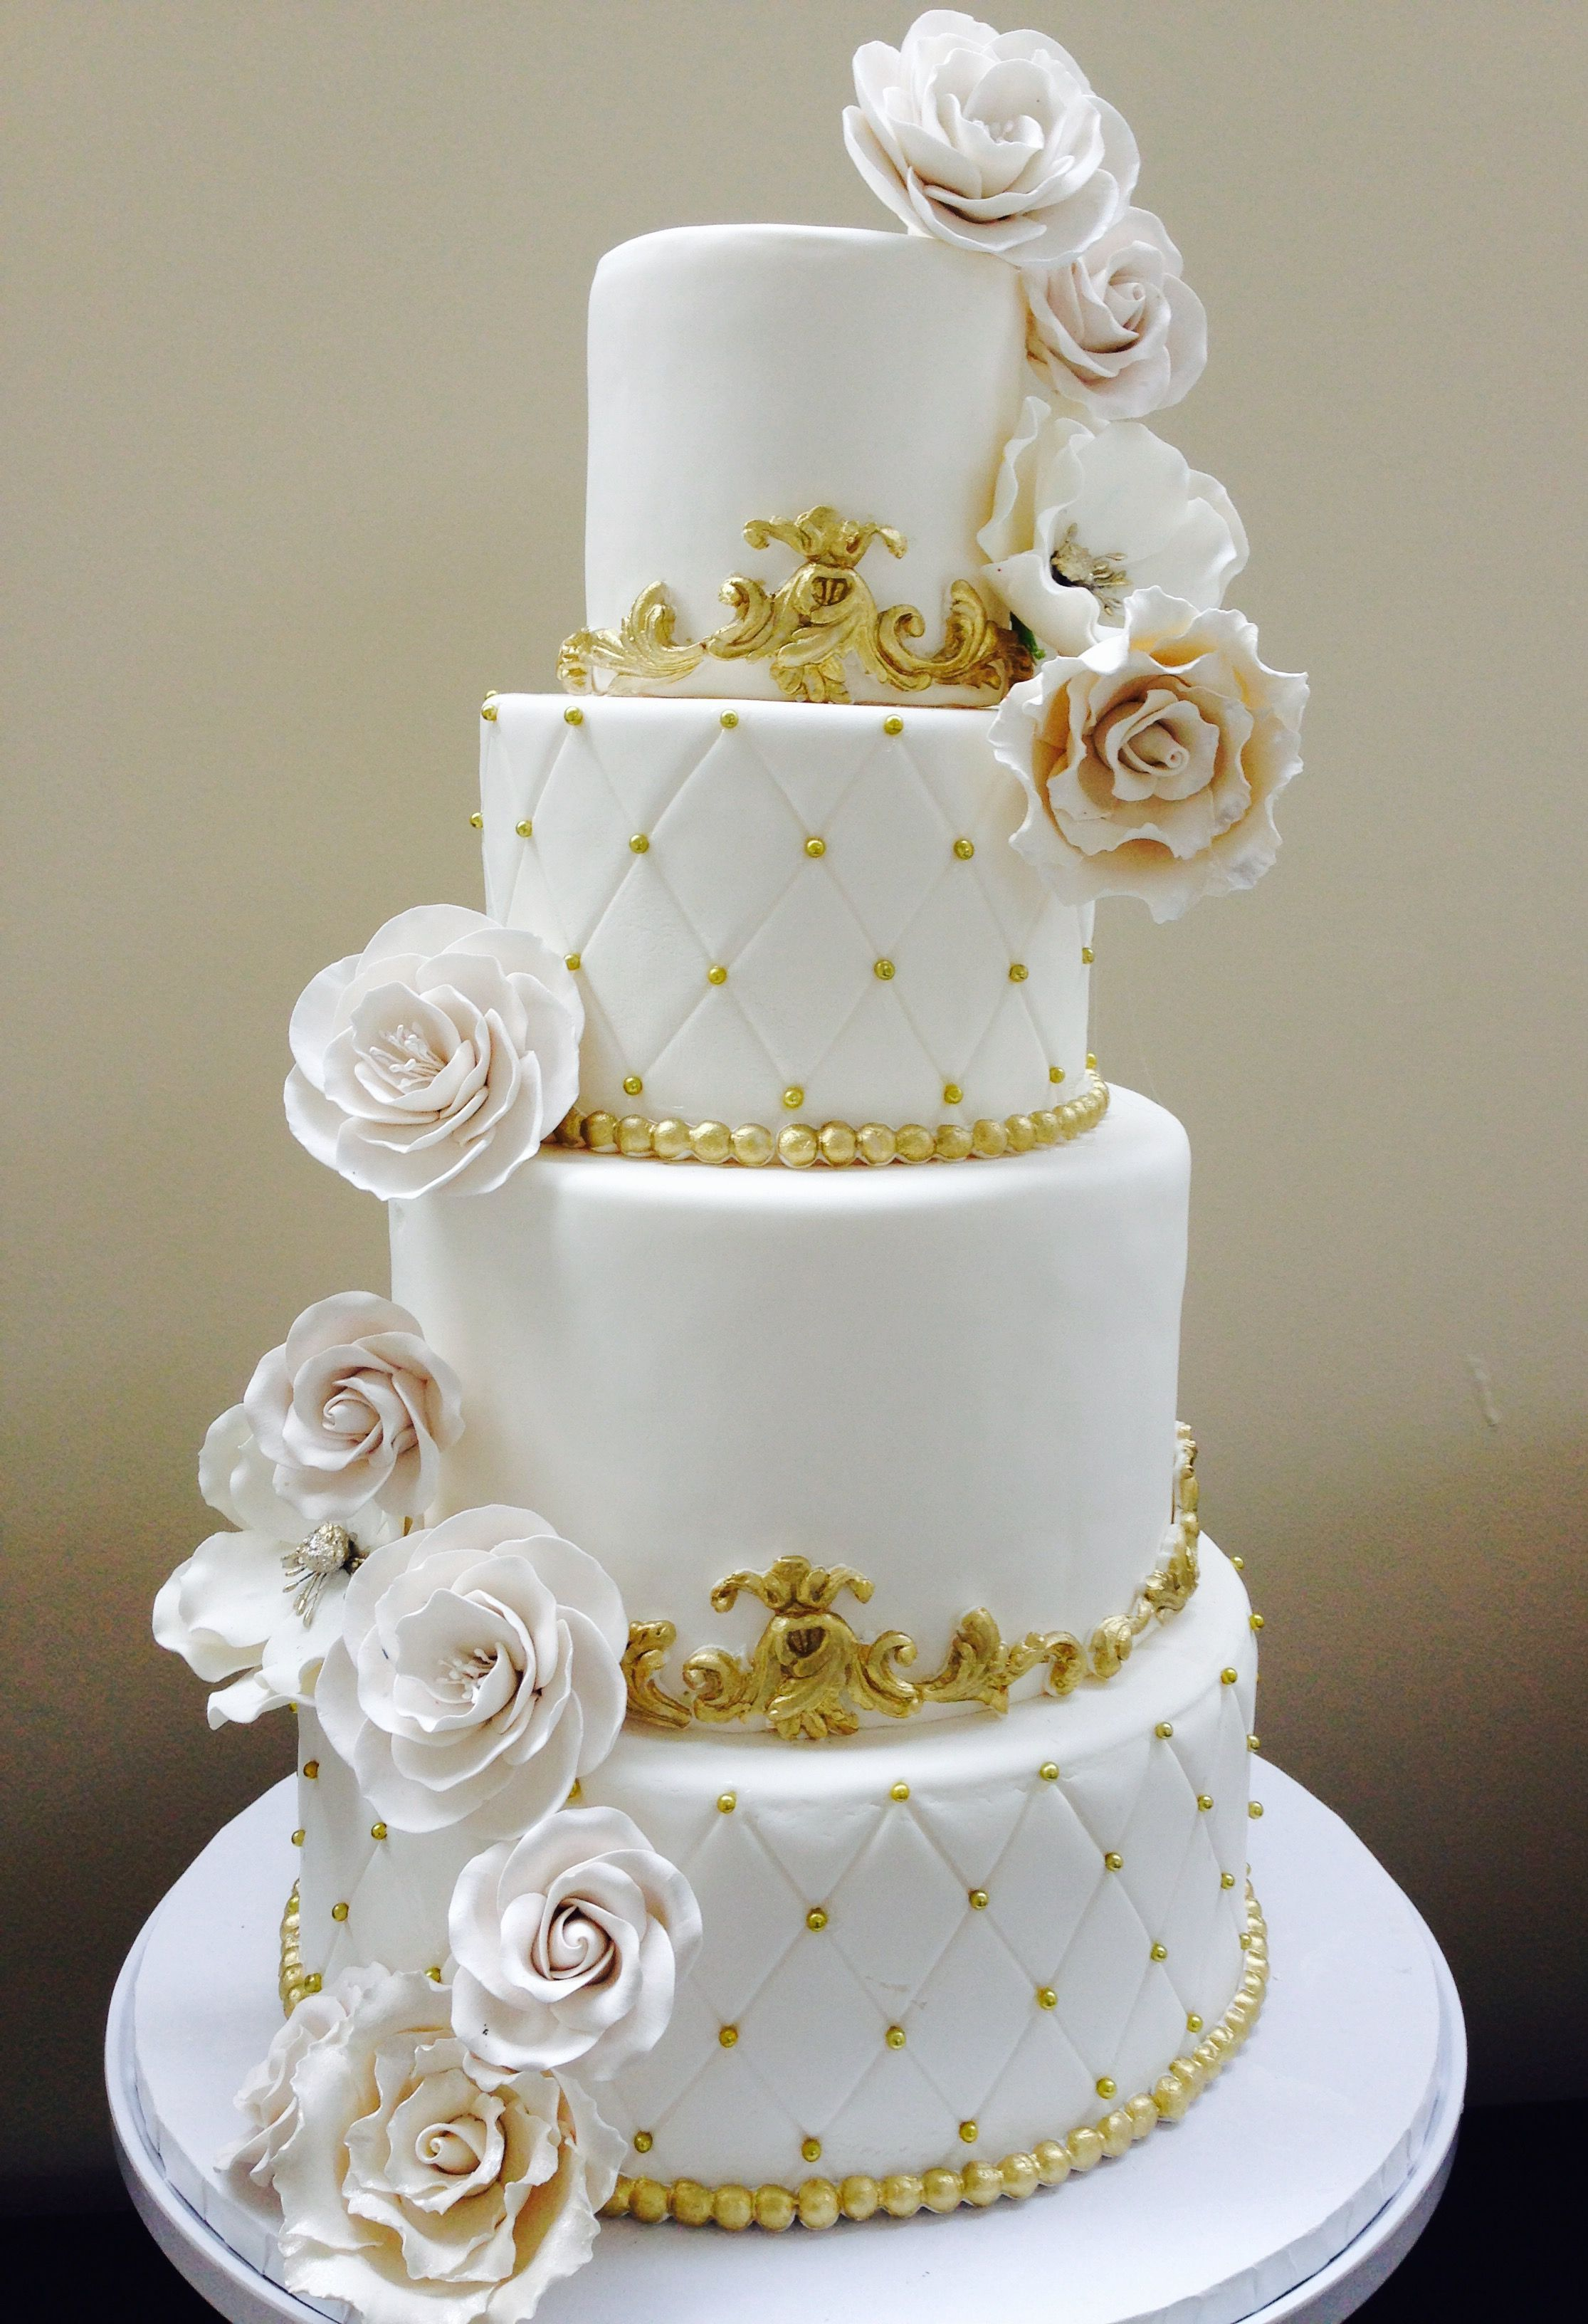 All white wedding cake with gold accents.